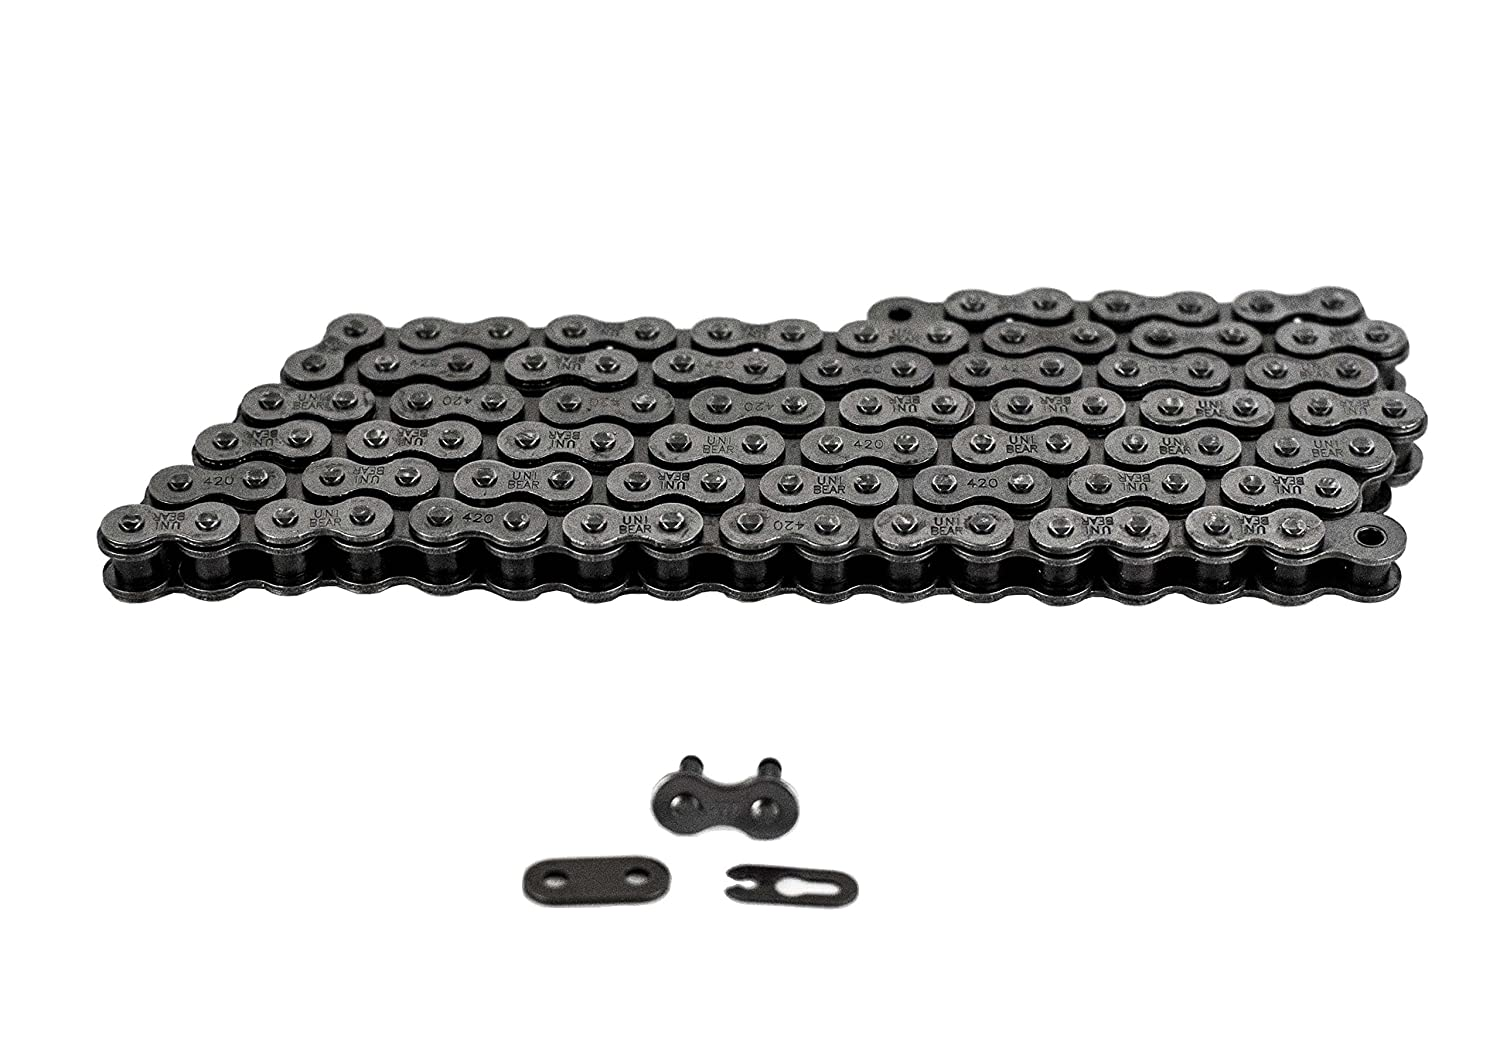 420 Motorcycle Chain 10 Feet Link 1 with latest Gorgeous Connecting